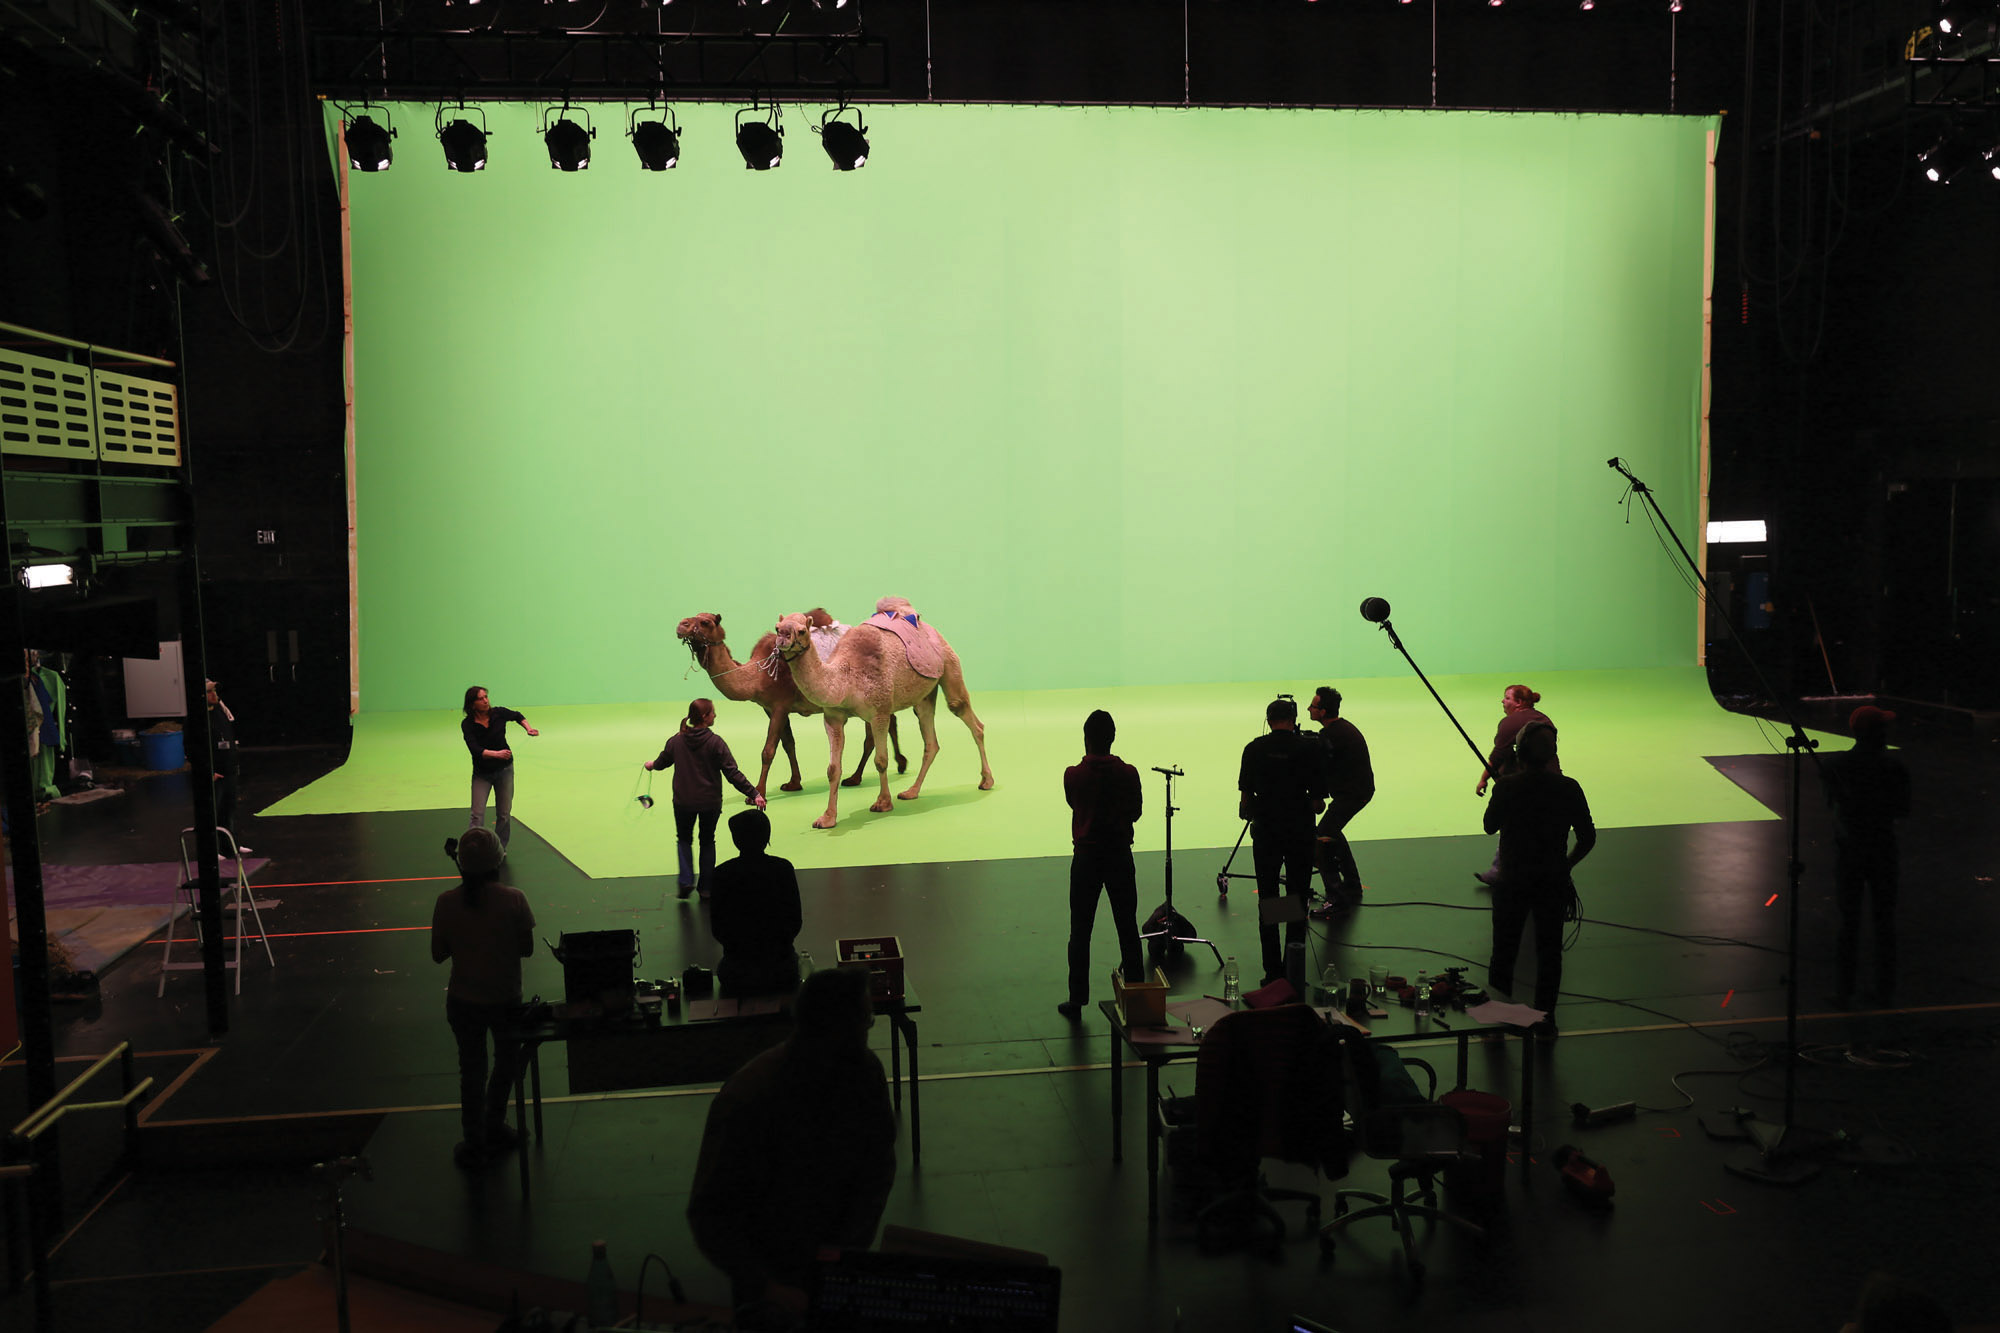 a camel against a giant green screen in the theater.